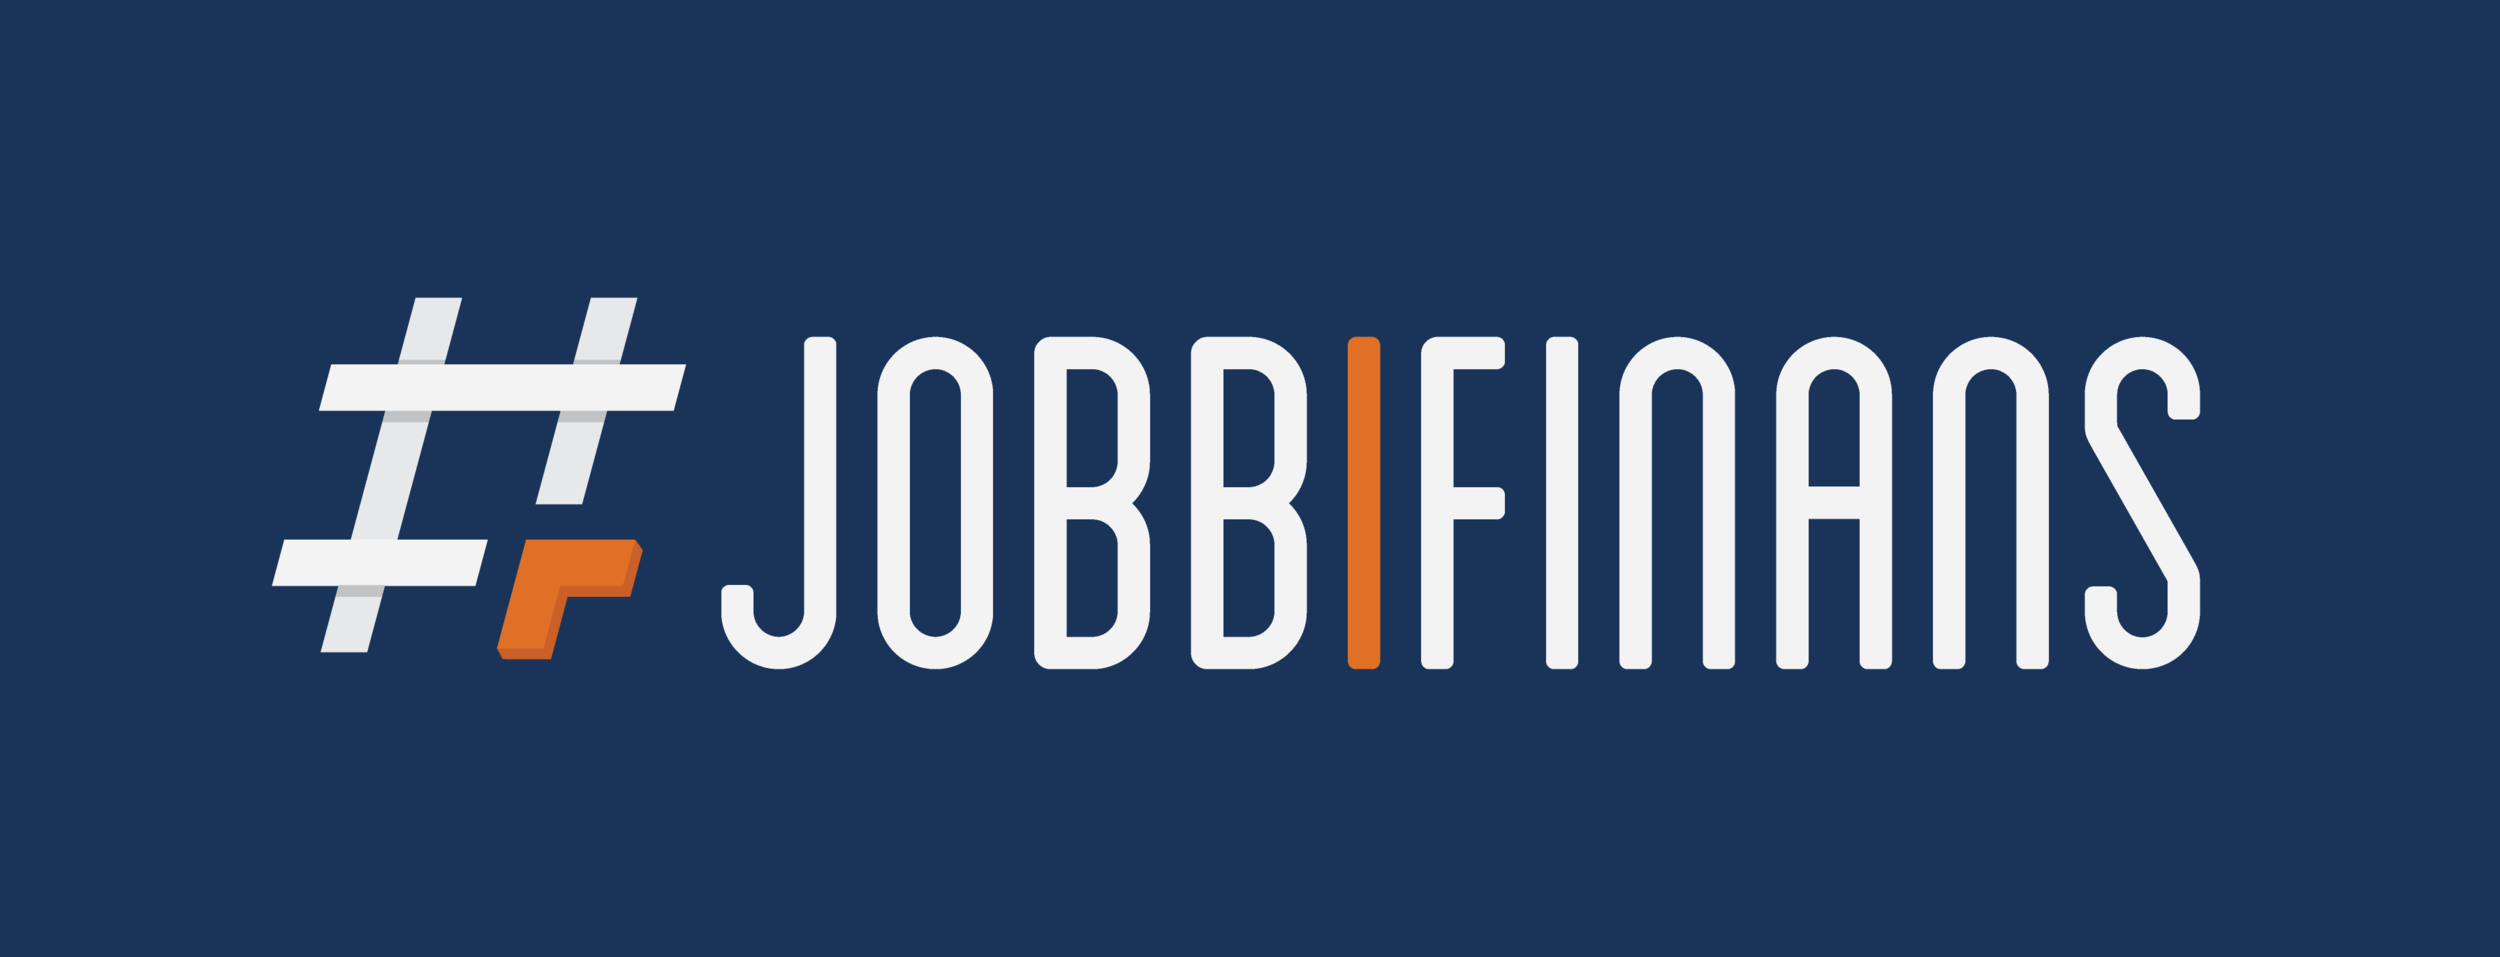 Jobbifinans-Konsus-FINAL-Large-Negative 01.png